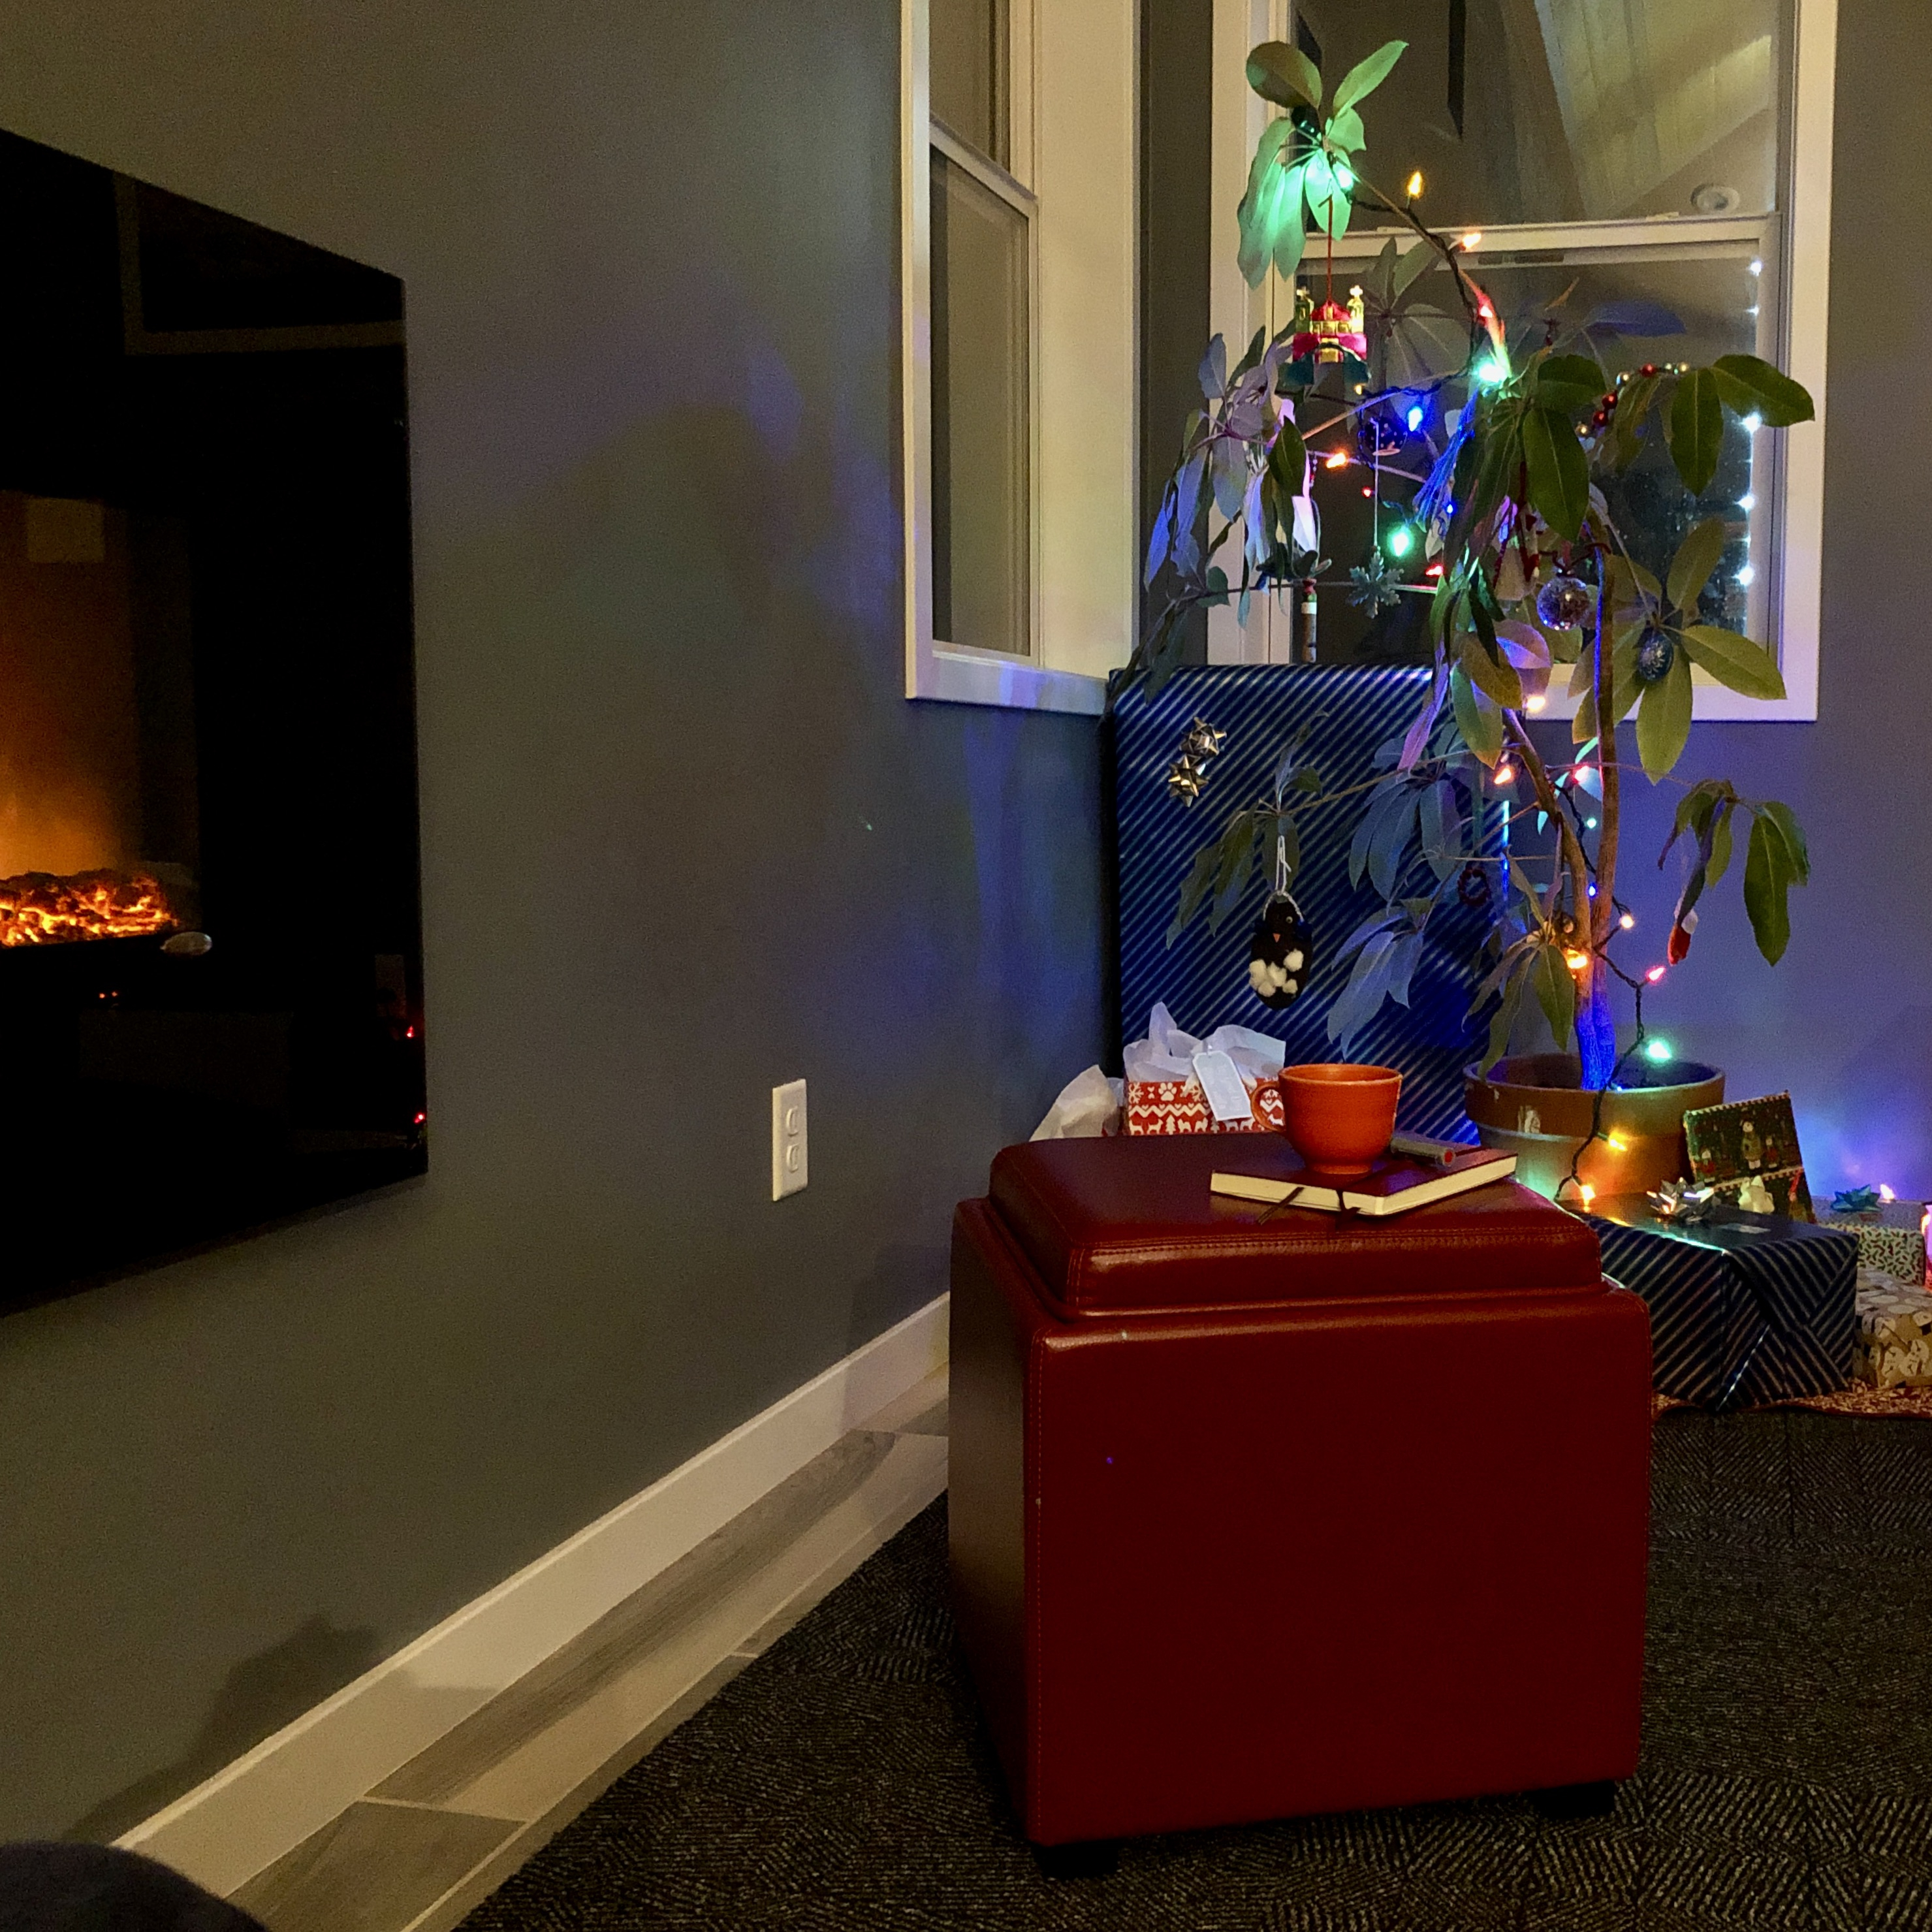 a ficus plant decorated for Christmas, beside a fireplace